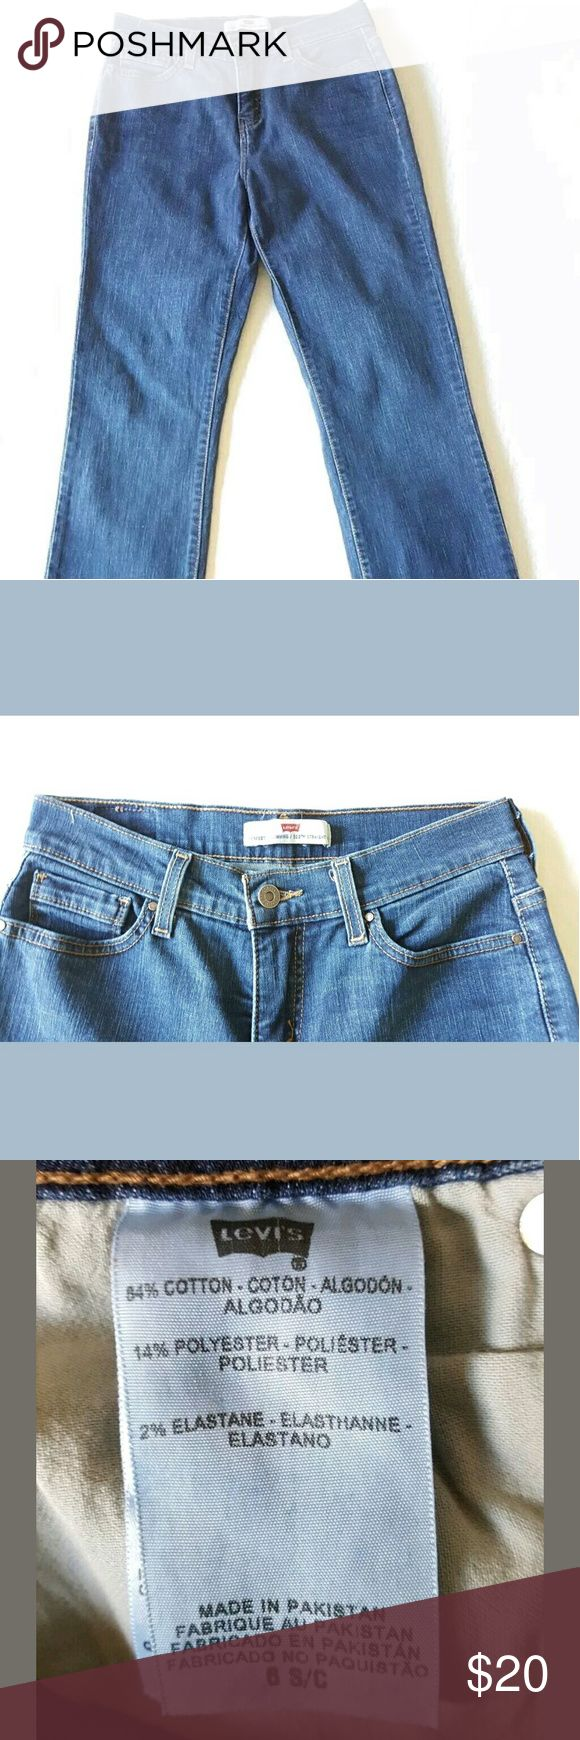 Women's Levis 512 Perfectly Slimming Blue Jeans Women's Levis 512 Perfectly Slimming Blue Denim Jeans- Size 6S  Nice gold tone embellishment on rear pockets. Levi's Jeans